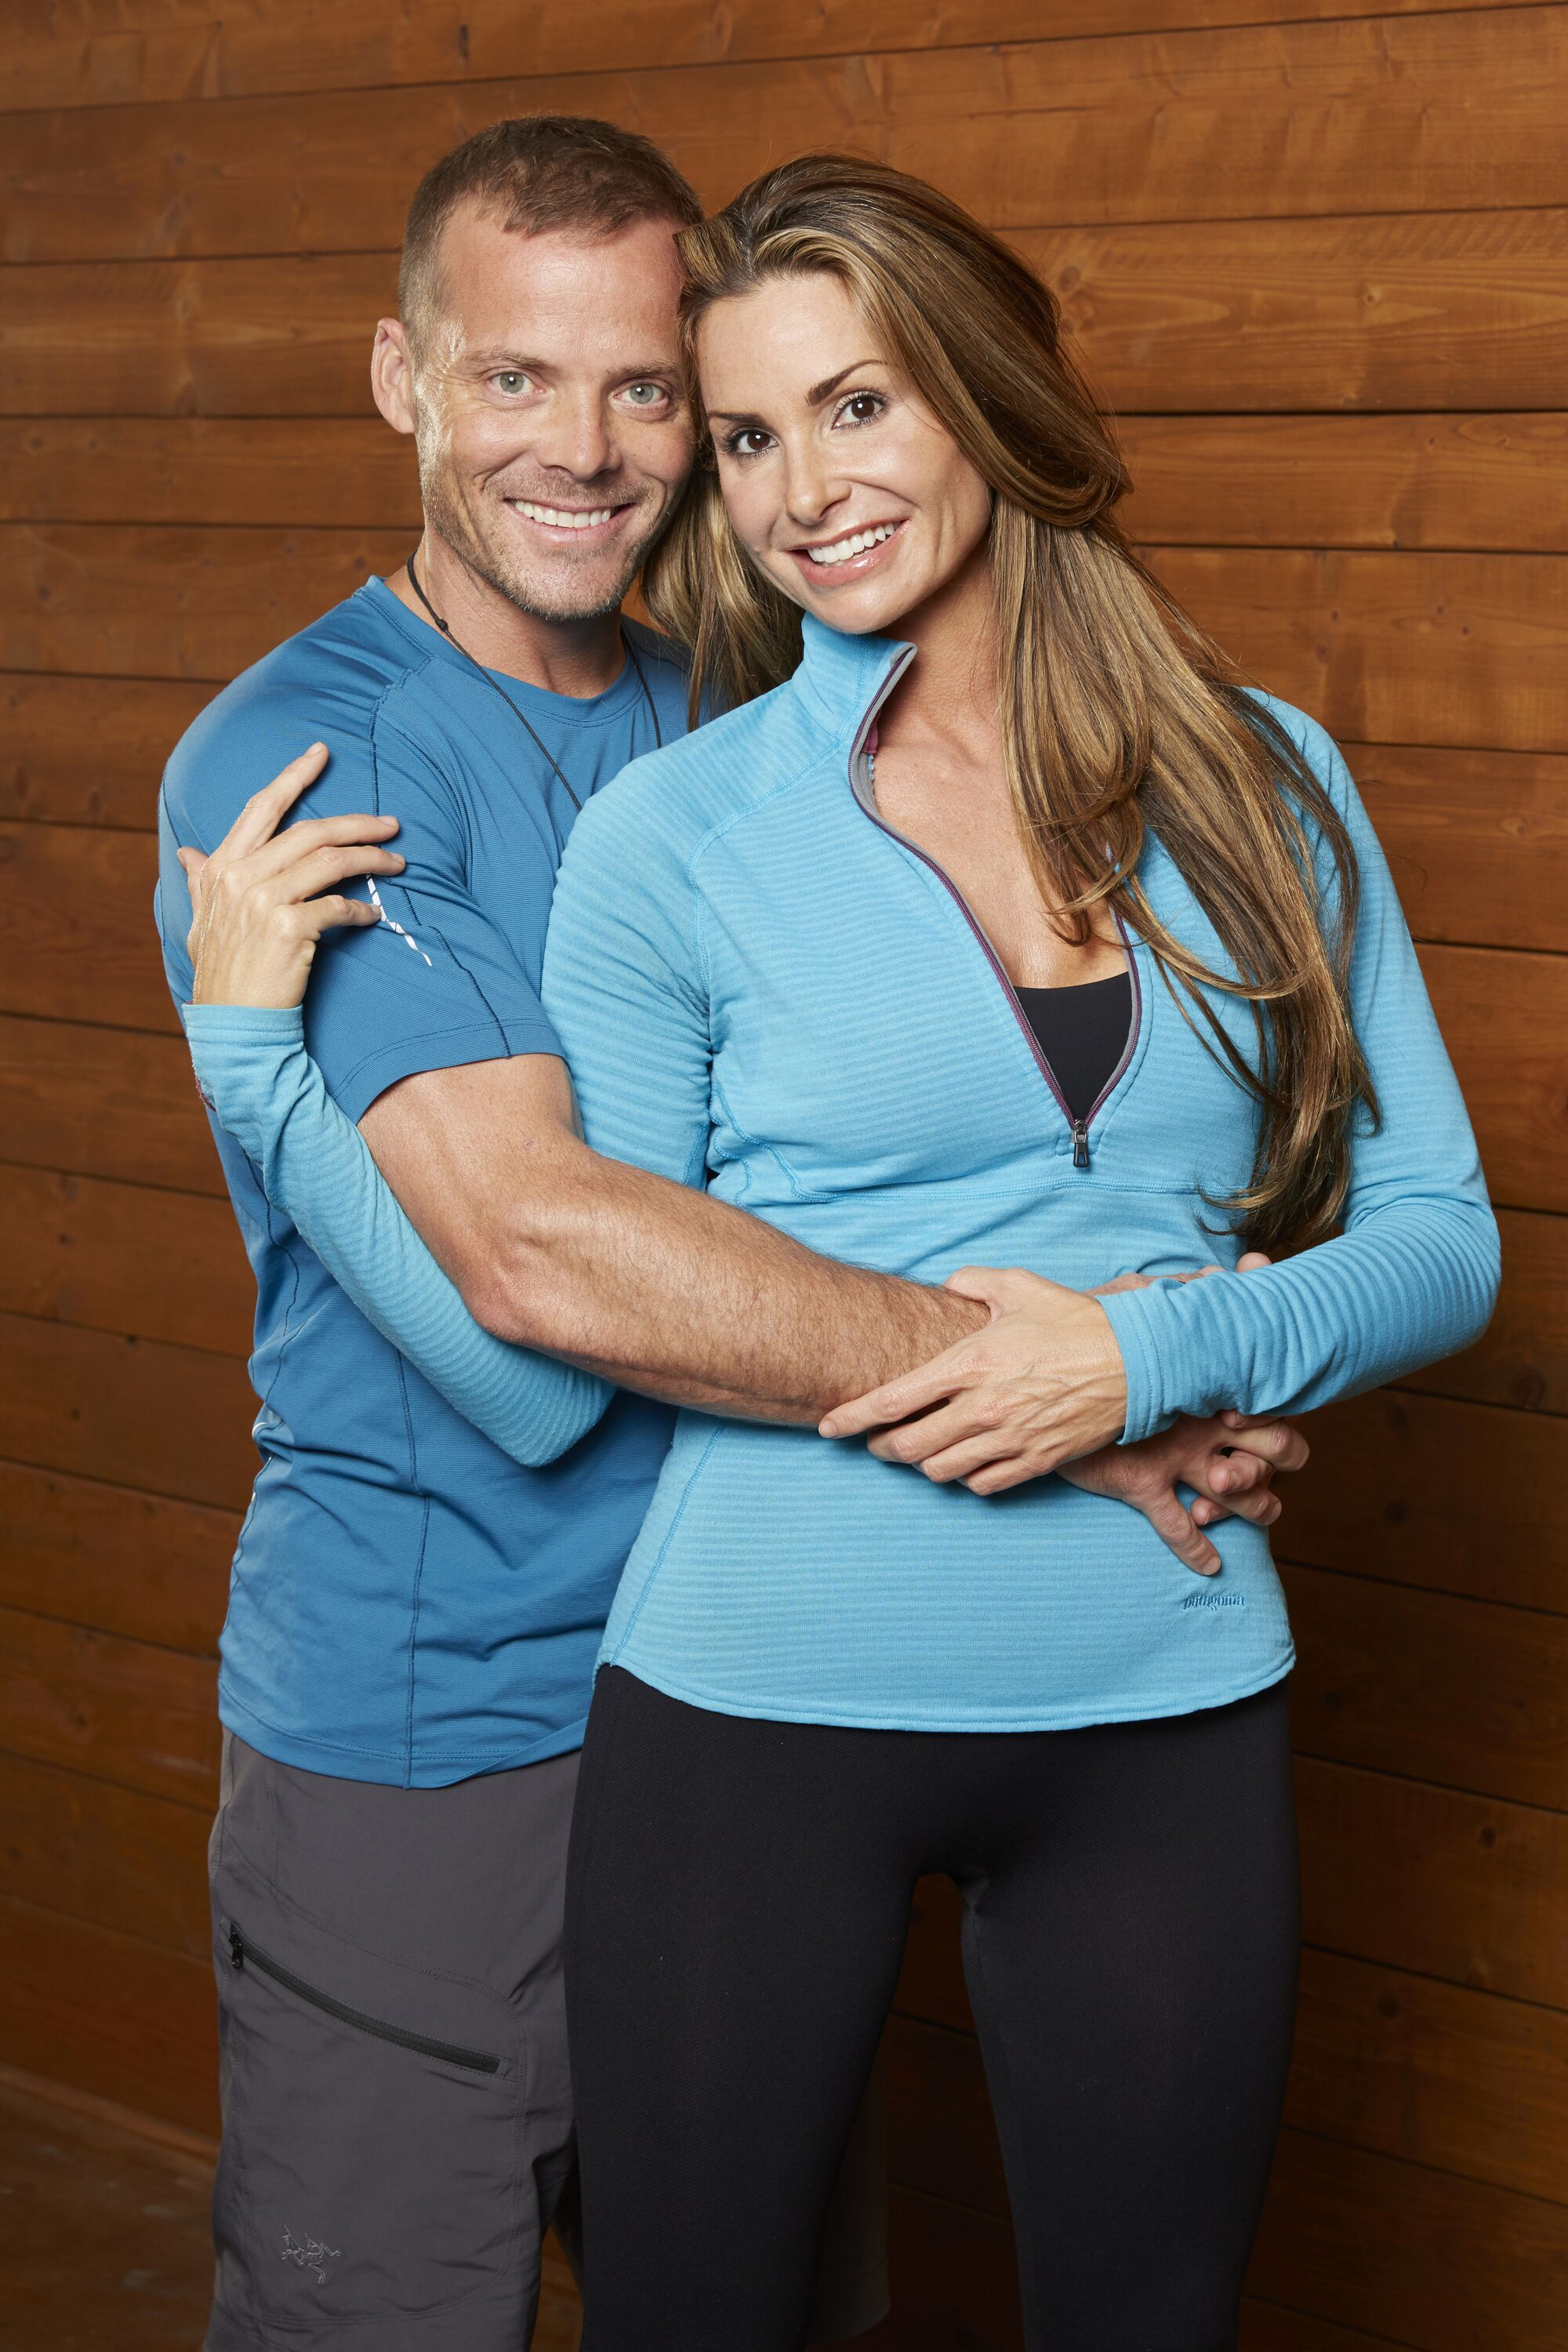 """Colin Guinn & Christie Woods on the eve of the beginning of """"The Amazing Race"""" Season 31 in June 2019 